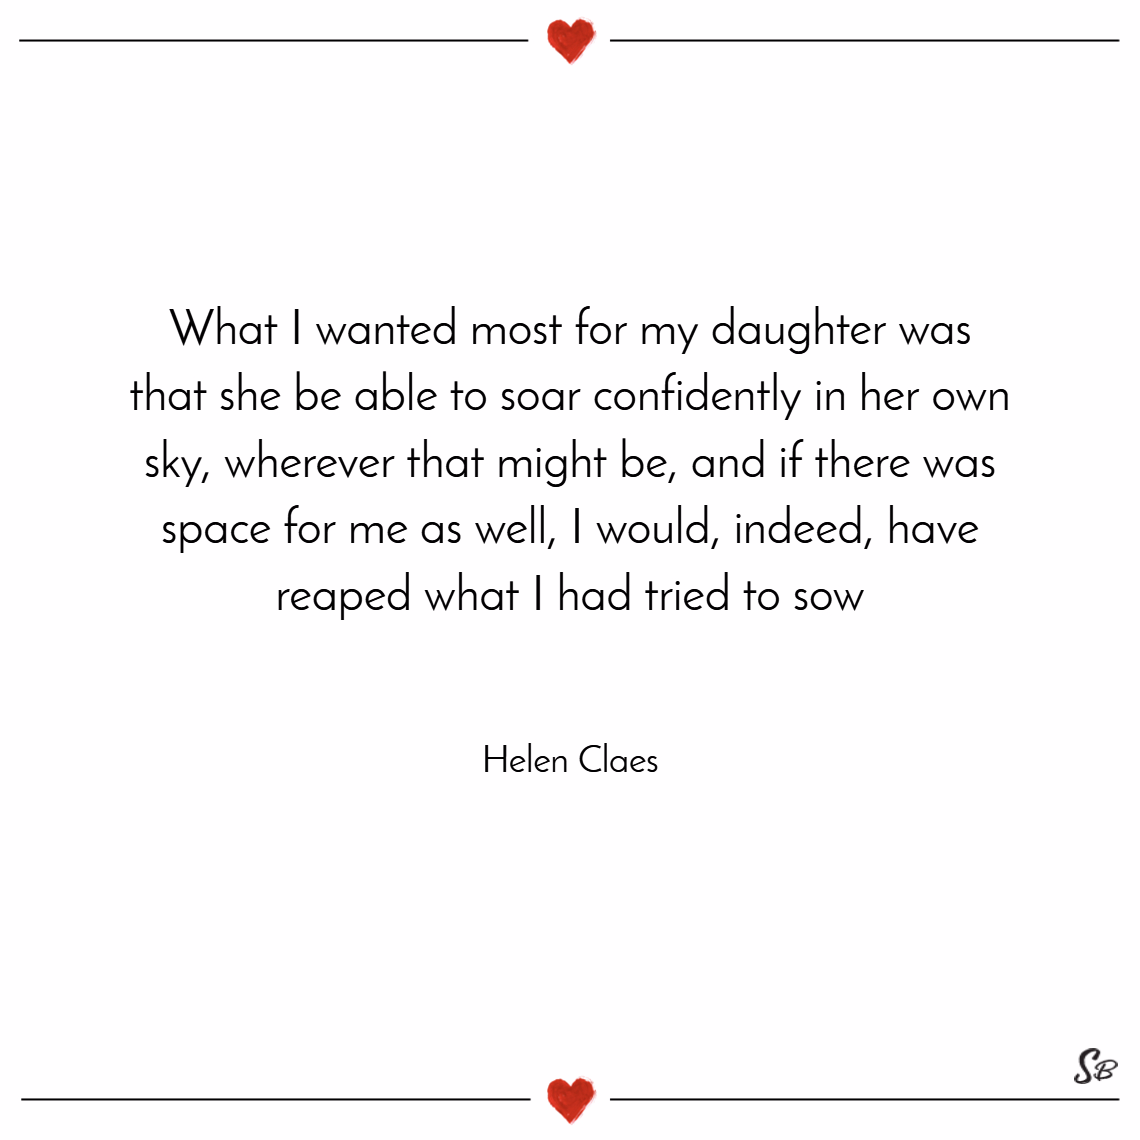 What i wanted most for my daughter was that she be able to soar confidently in her own sky. – helen claes